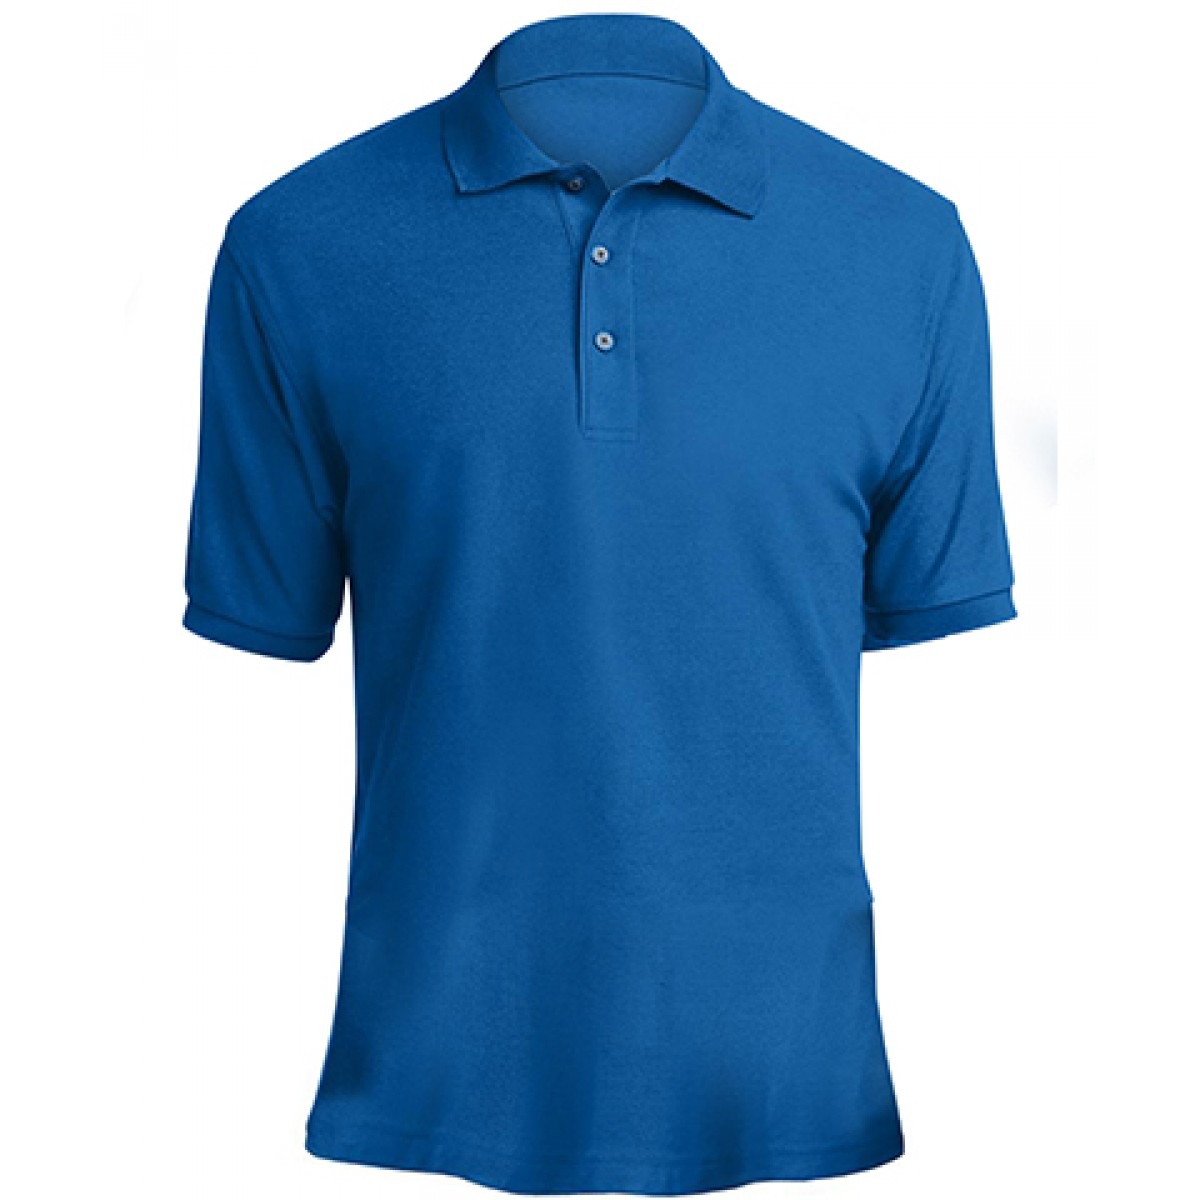 Womens Classic Polo -Royal Blue-YS